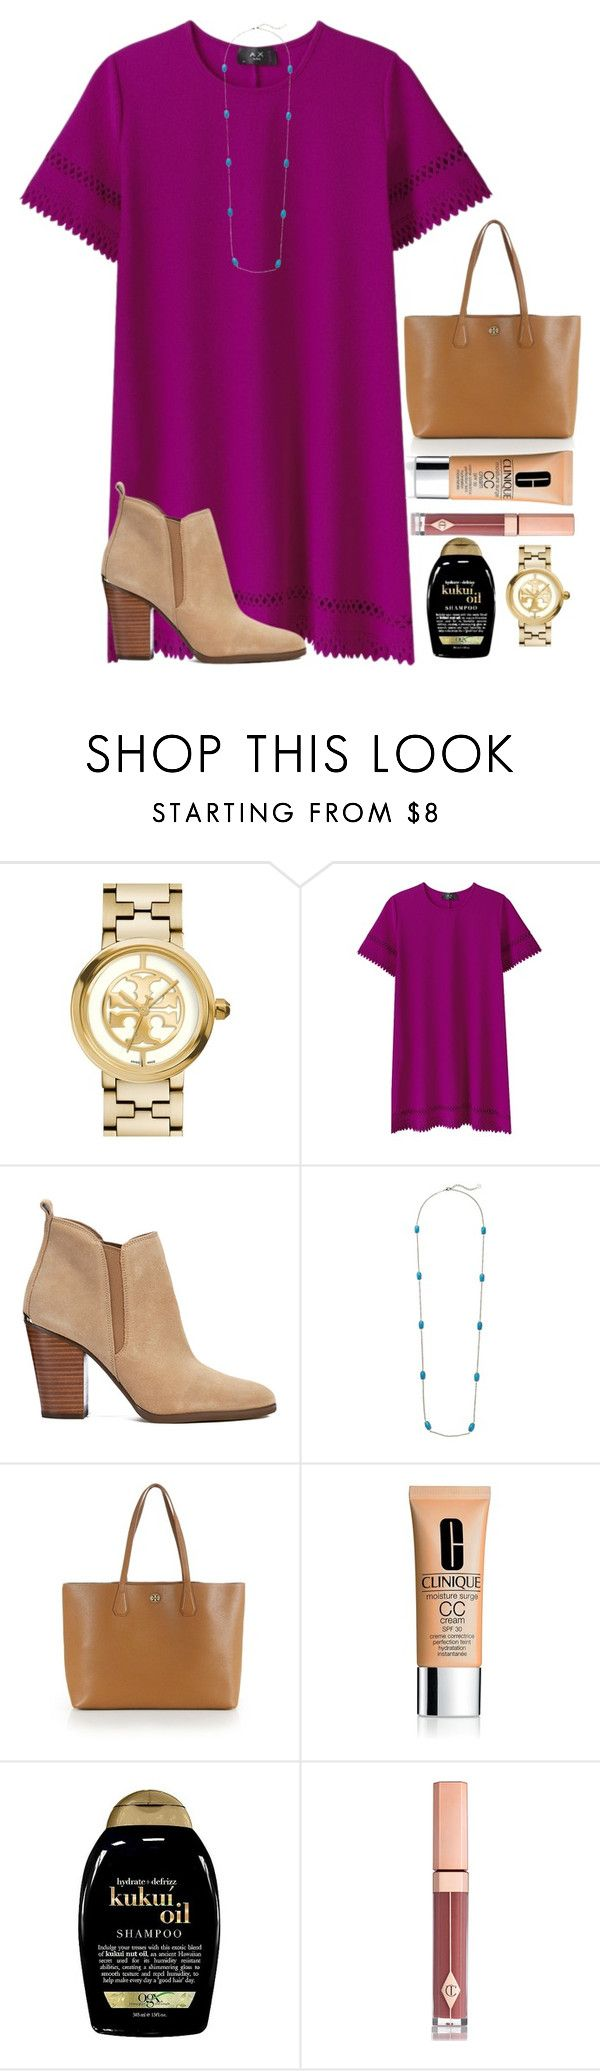 """700 followers☺️"" by emmagracejoness ❤ liked on Polyvore featuring Tory Burch, MICHAEL Michael Kors, Kendra Scott, Clinique, Organix and Charlotte Tilbury"